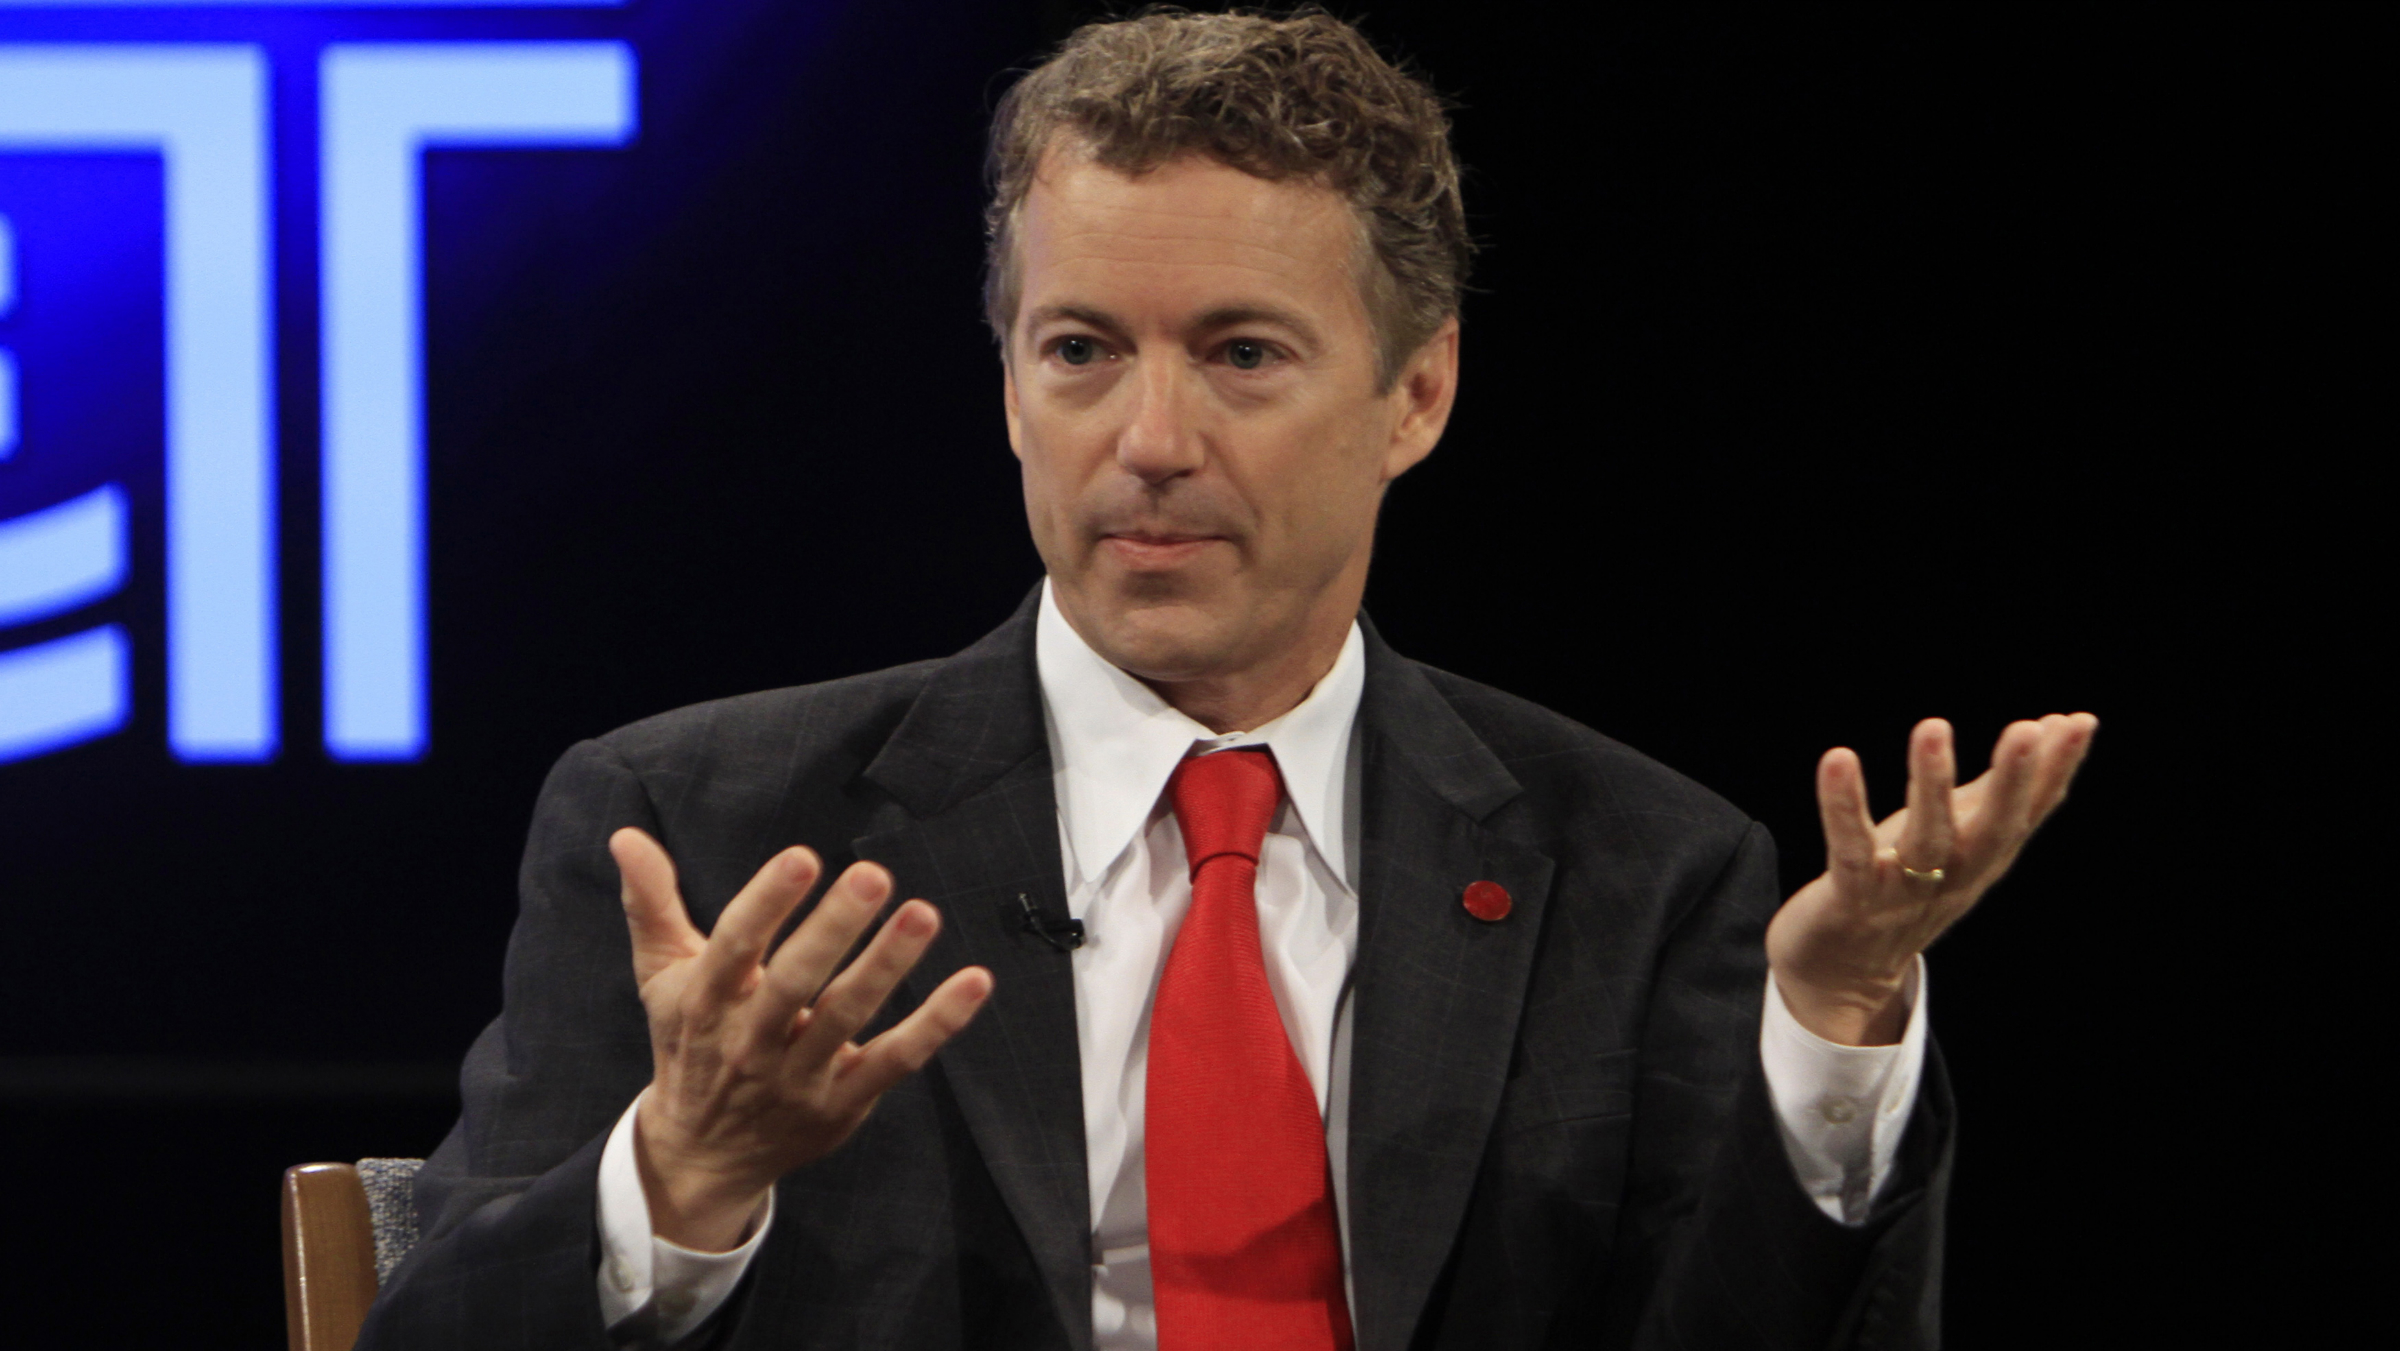 Republican U.S. Senate candidate Rand Paul gestures as he talks with Democratic U.S. Senate candidate Jack Conway before the last of their four debates at the Kentucky Education Television network headquarters in Lexington, Kentucky October 25, 2010. REUTERS/John Sommers II